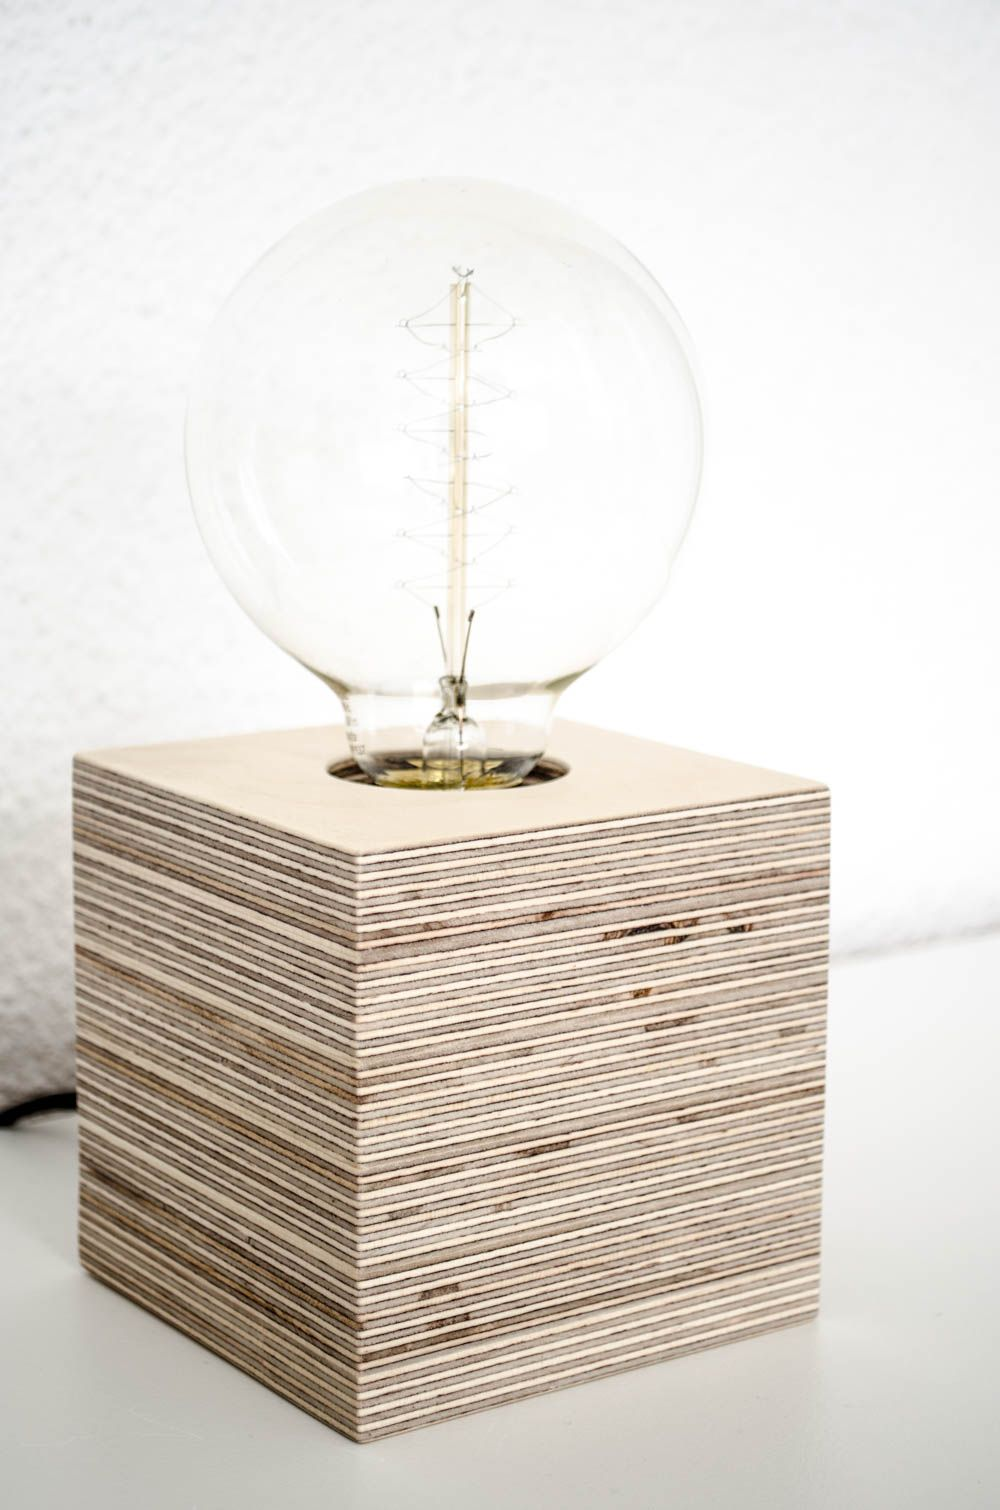 This relatively small lamp takes up an area of only 10 x 10 cm, making it ideal for many uses – including a desk, bed lamp, side table or even a book shelf. Built from sheets of birch plywood… More